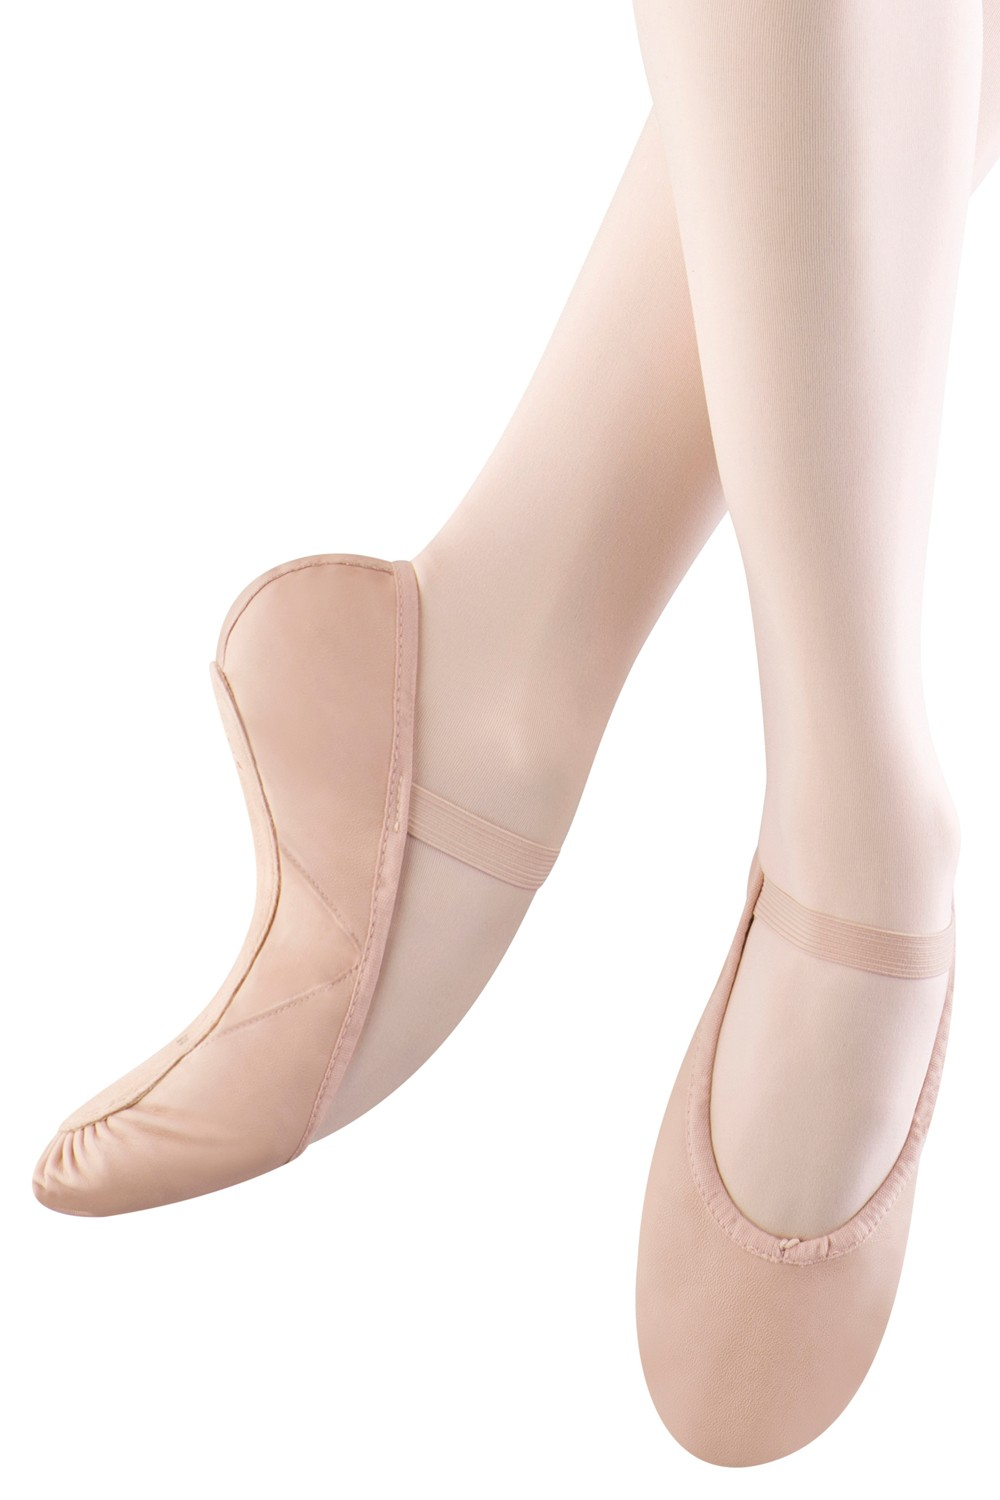 Ecole Girl's Ballet Shoes